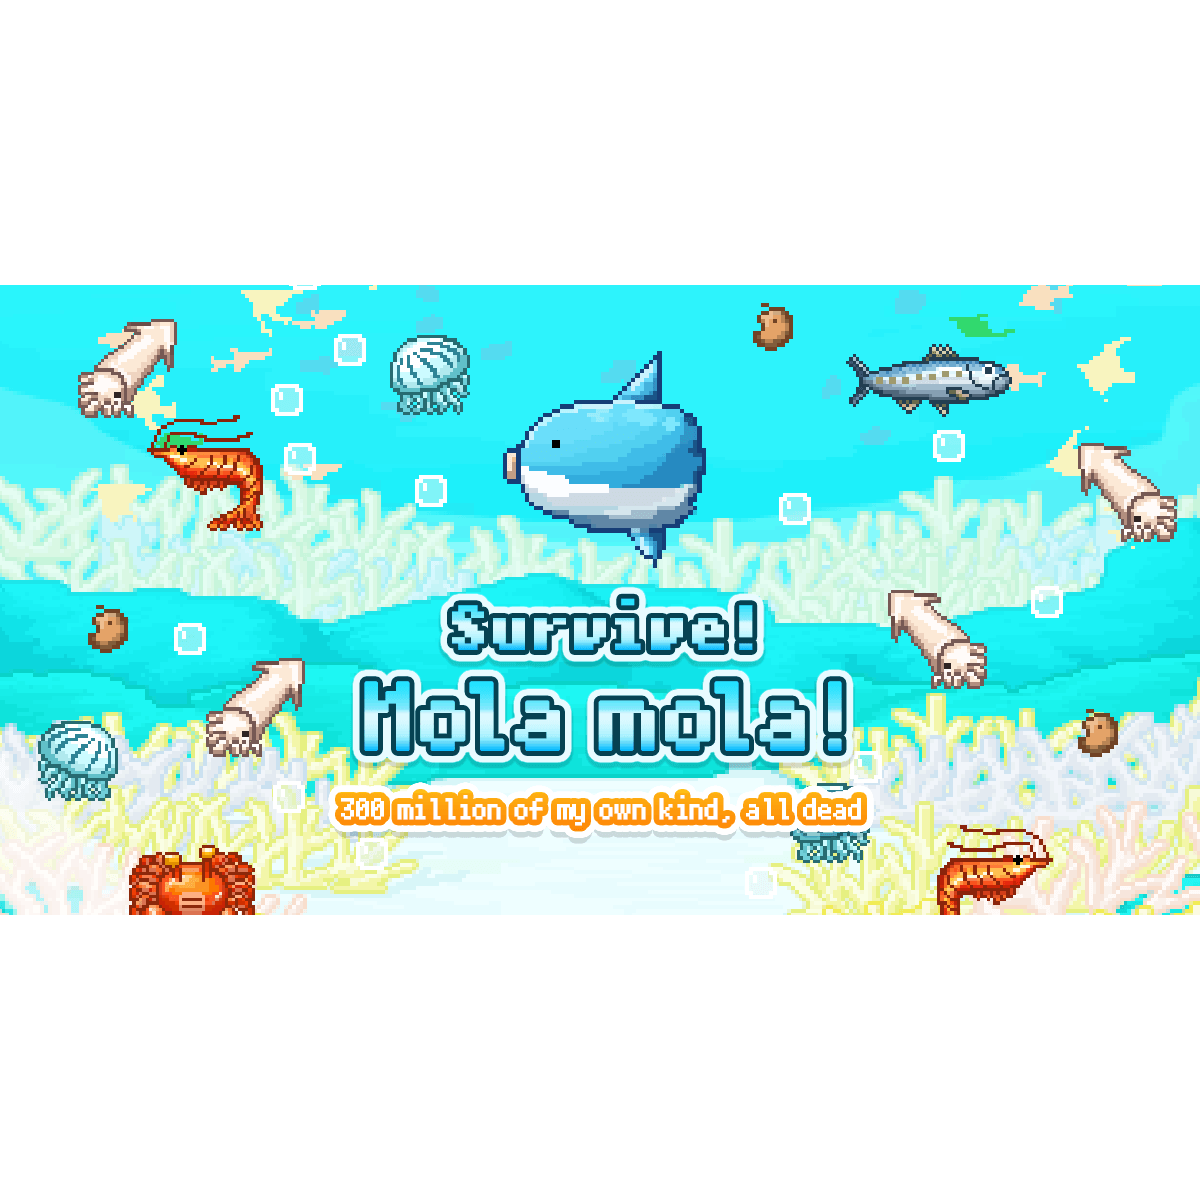 Survive! Mola mola! Official Website